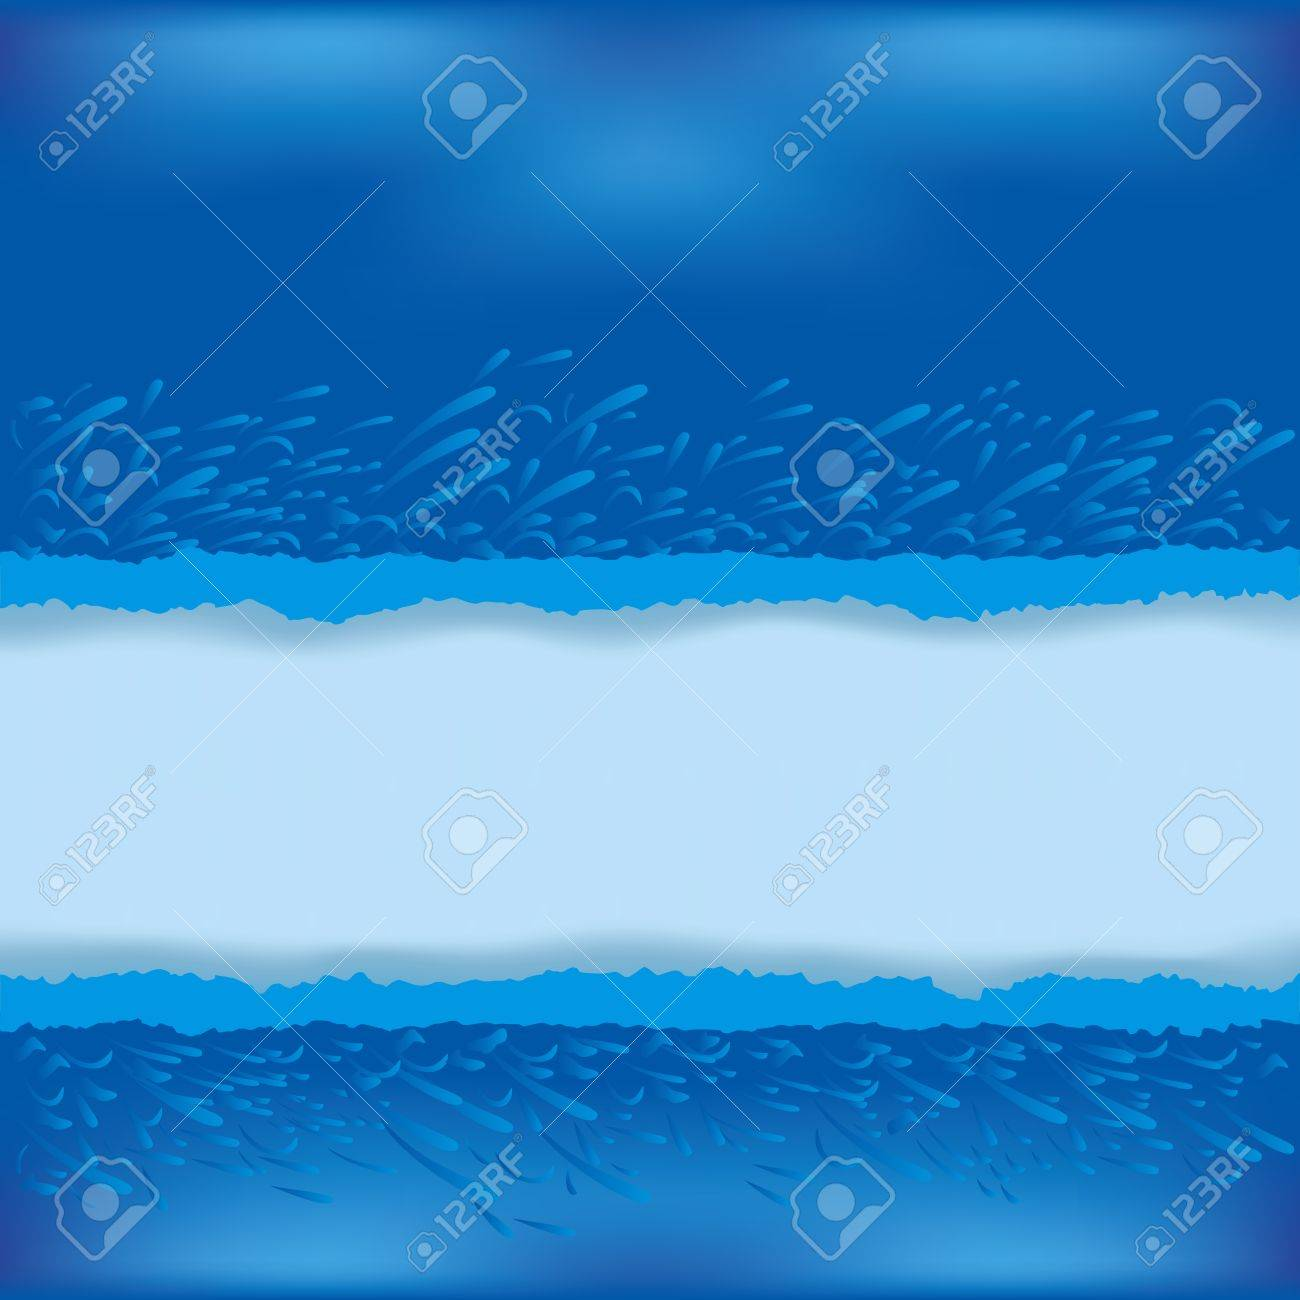 Abstract background light blue with decorative elements and place for text Stock Vector - 11942127